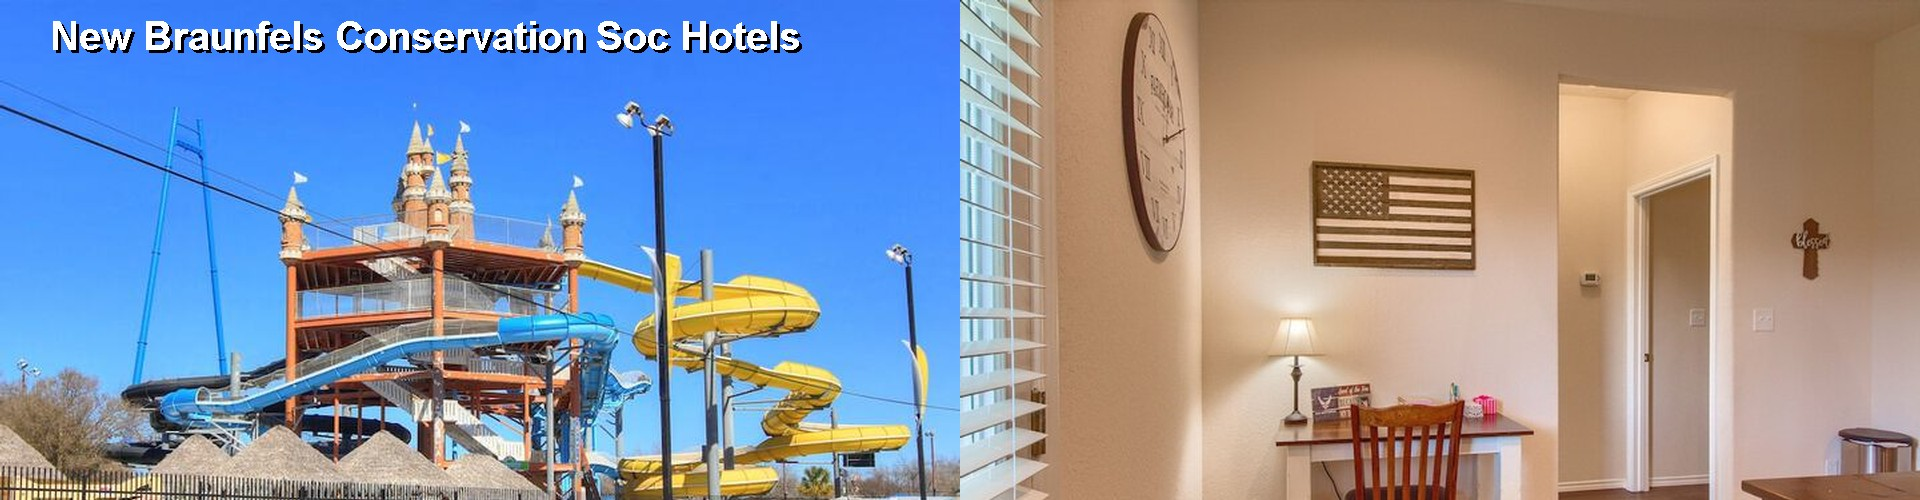 5 Best Hotels near New Braunfels Conservation Soc